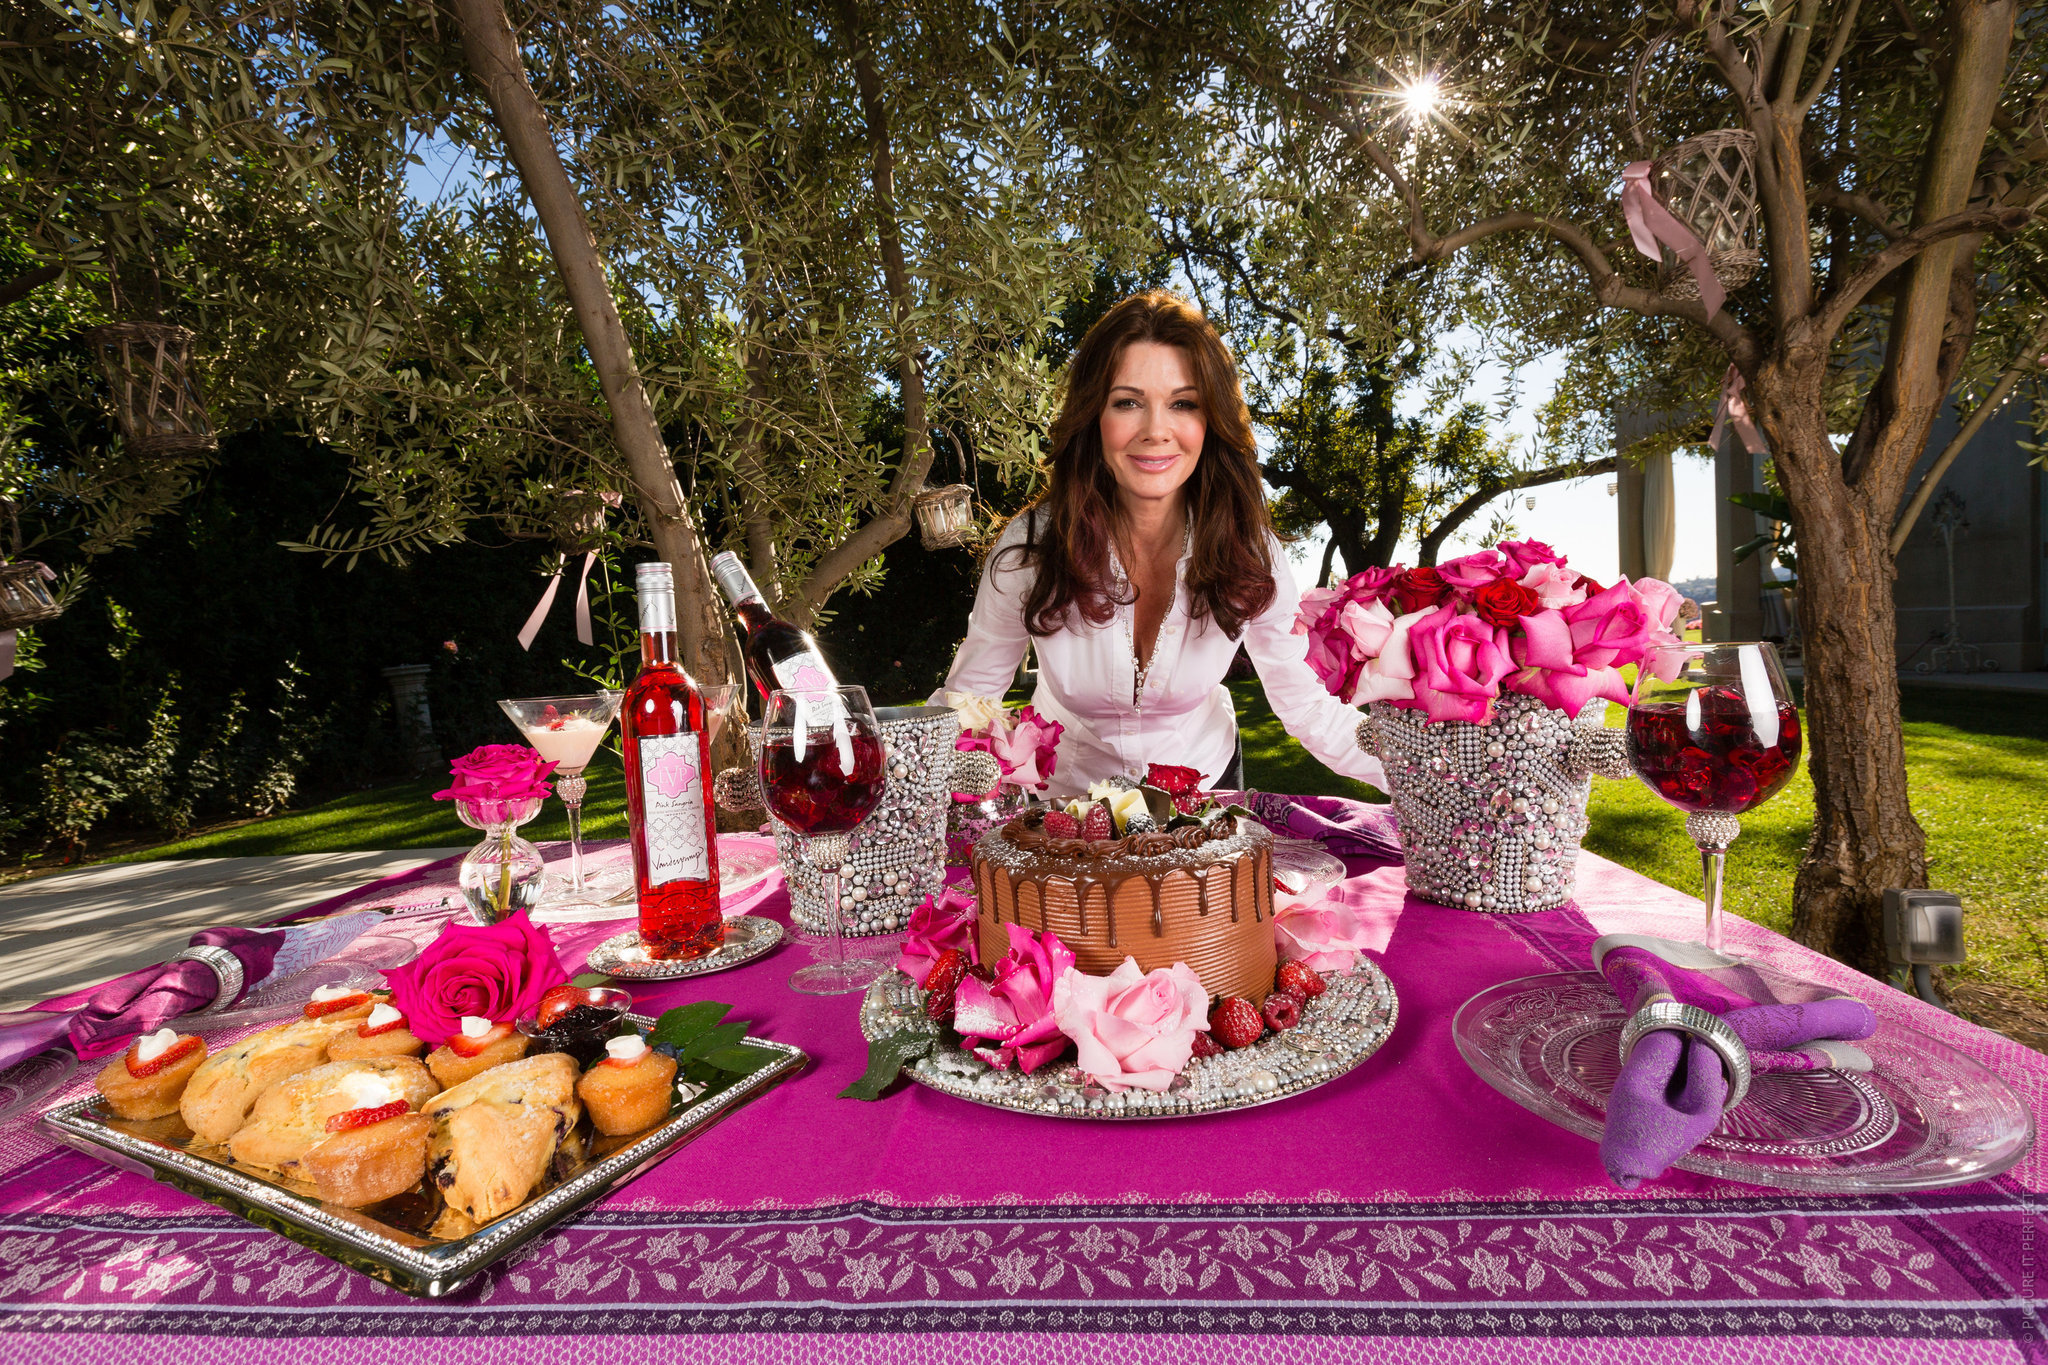 Real Housewife Lisa Vanderpump Launches New Housewares